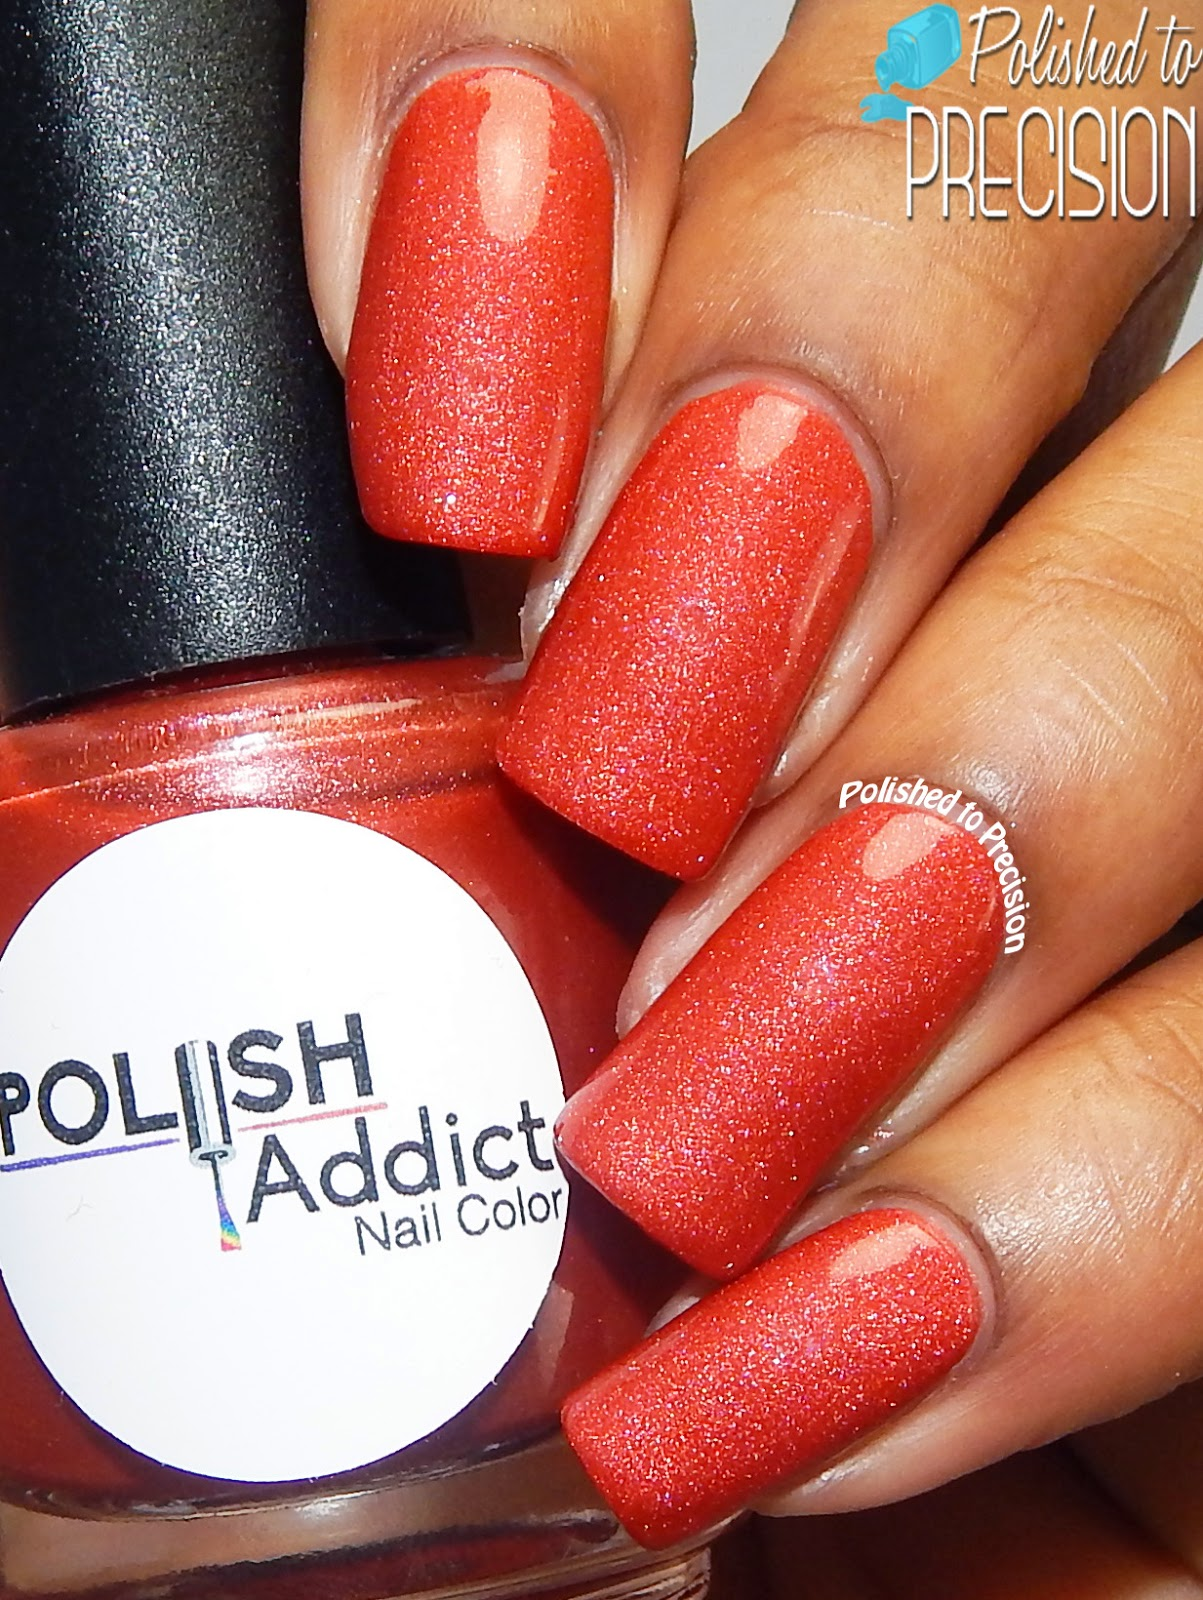 Polish-Addict-Nail-Color-Some-Like-It-Hot